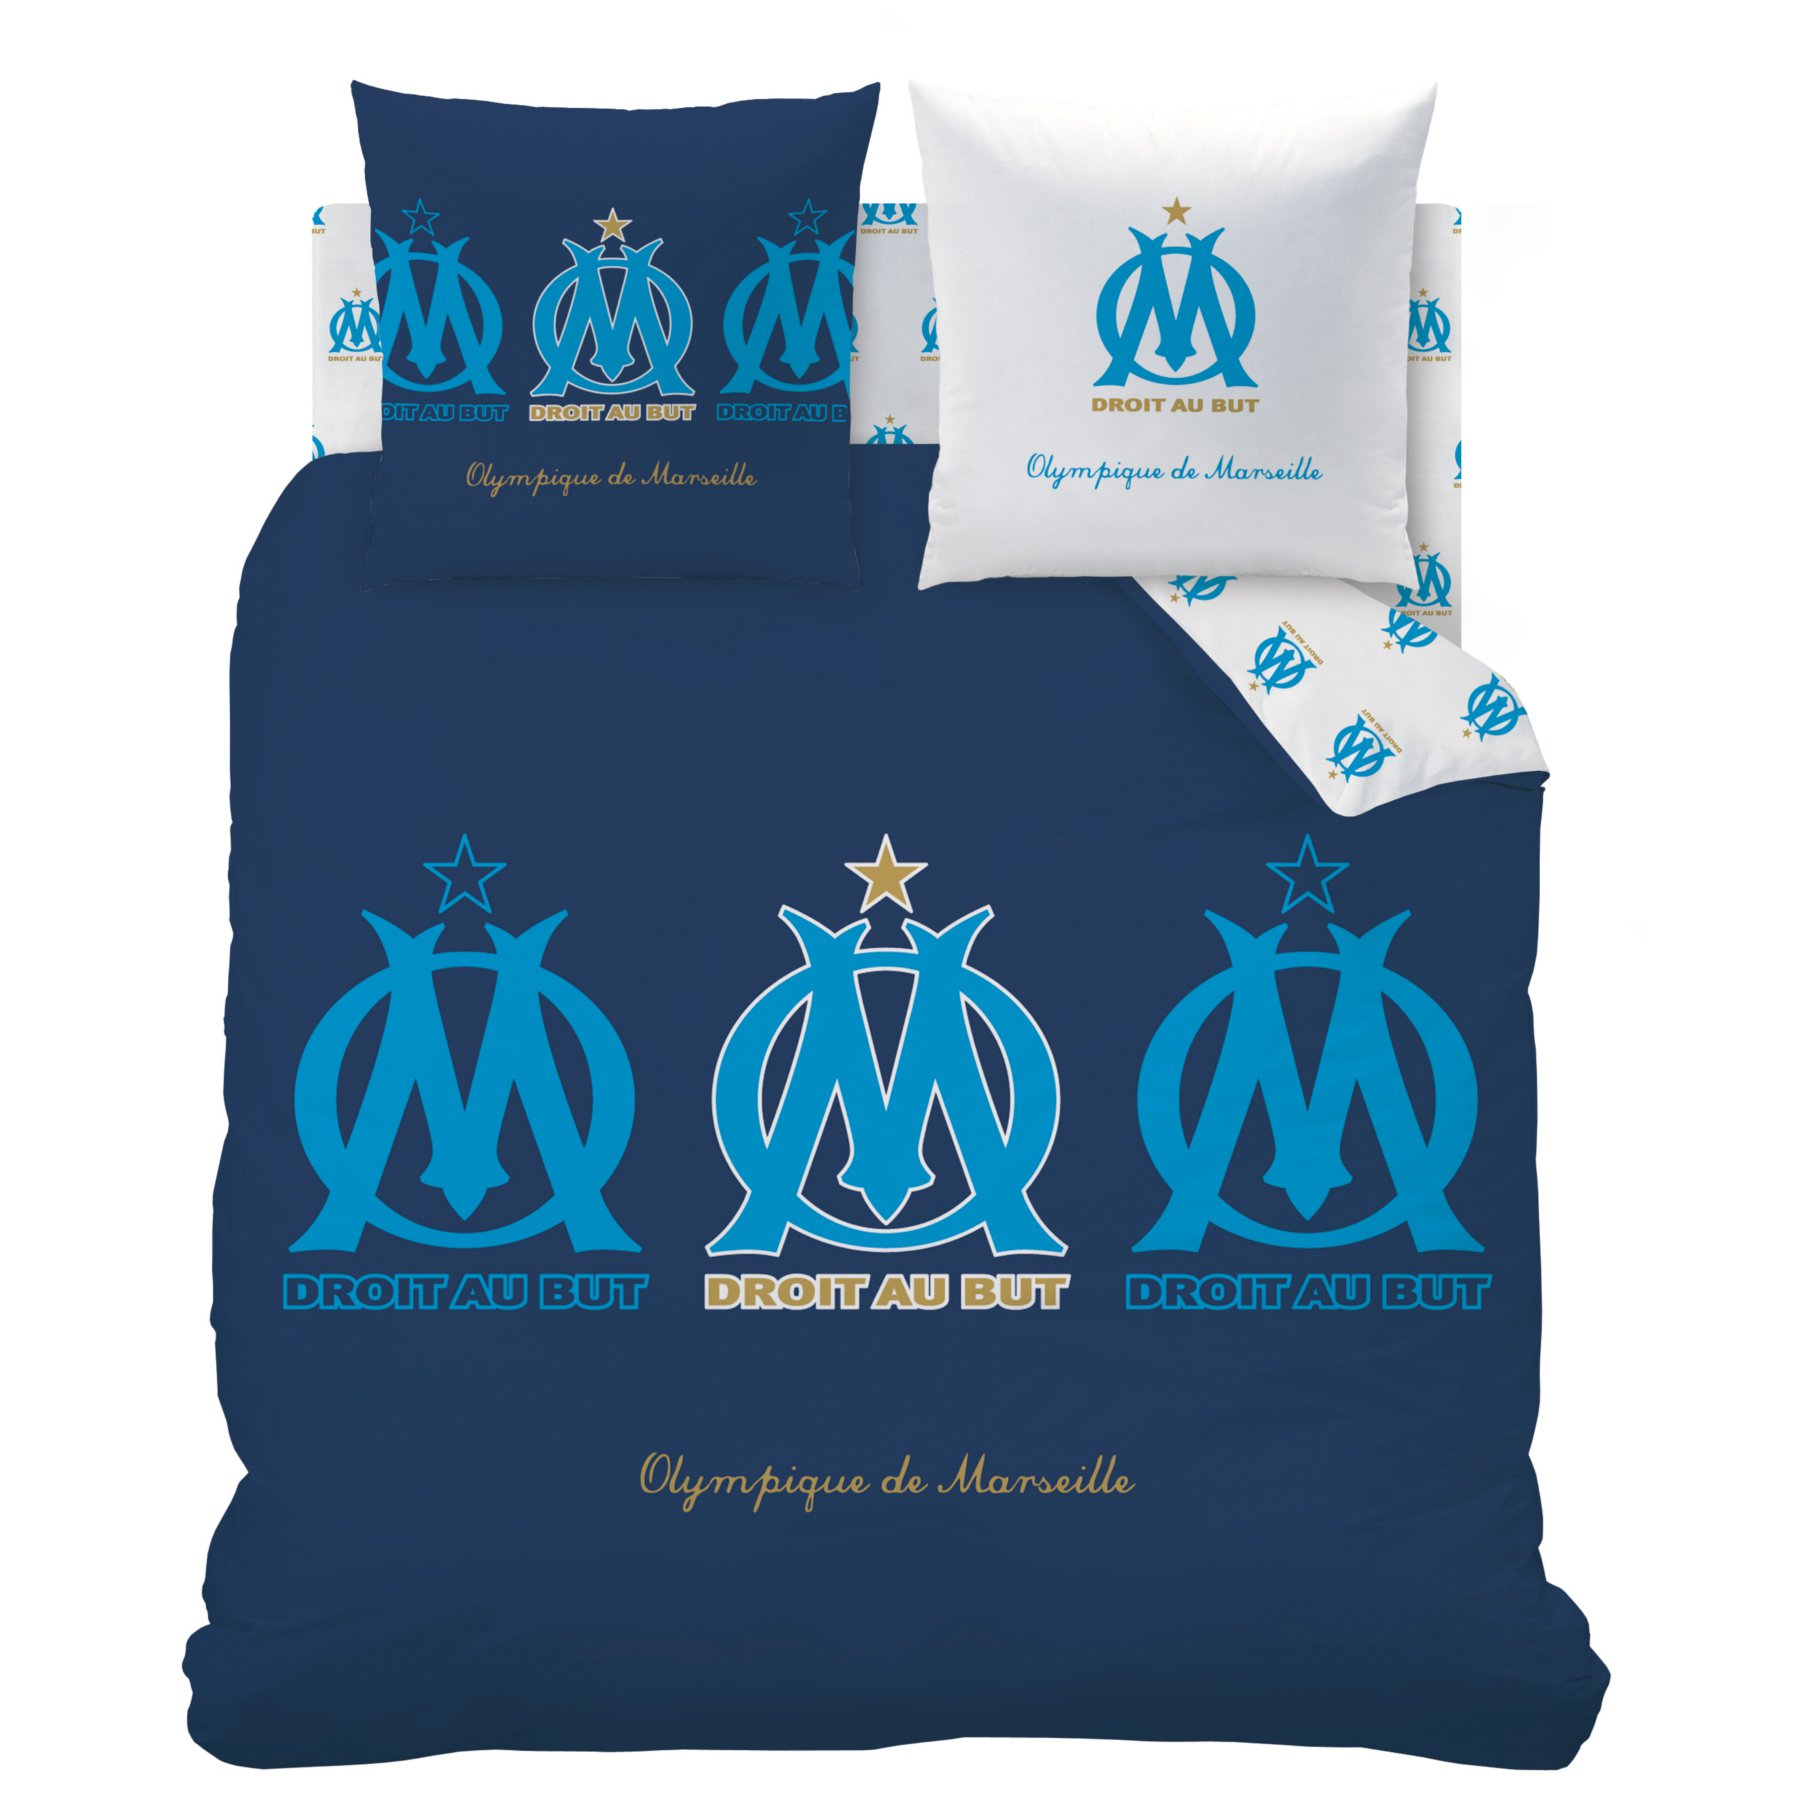 d co chambre olympique de marseille. Black Bedroom Furniture Sets. Home Design Ideas